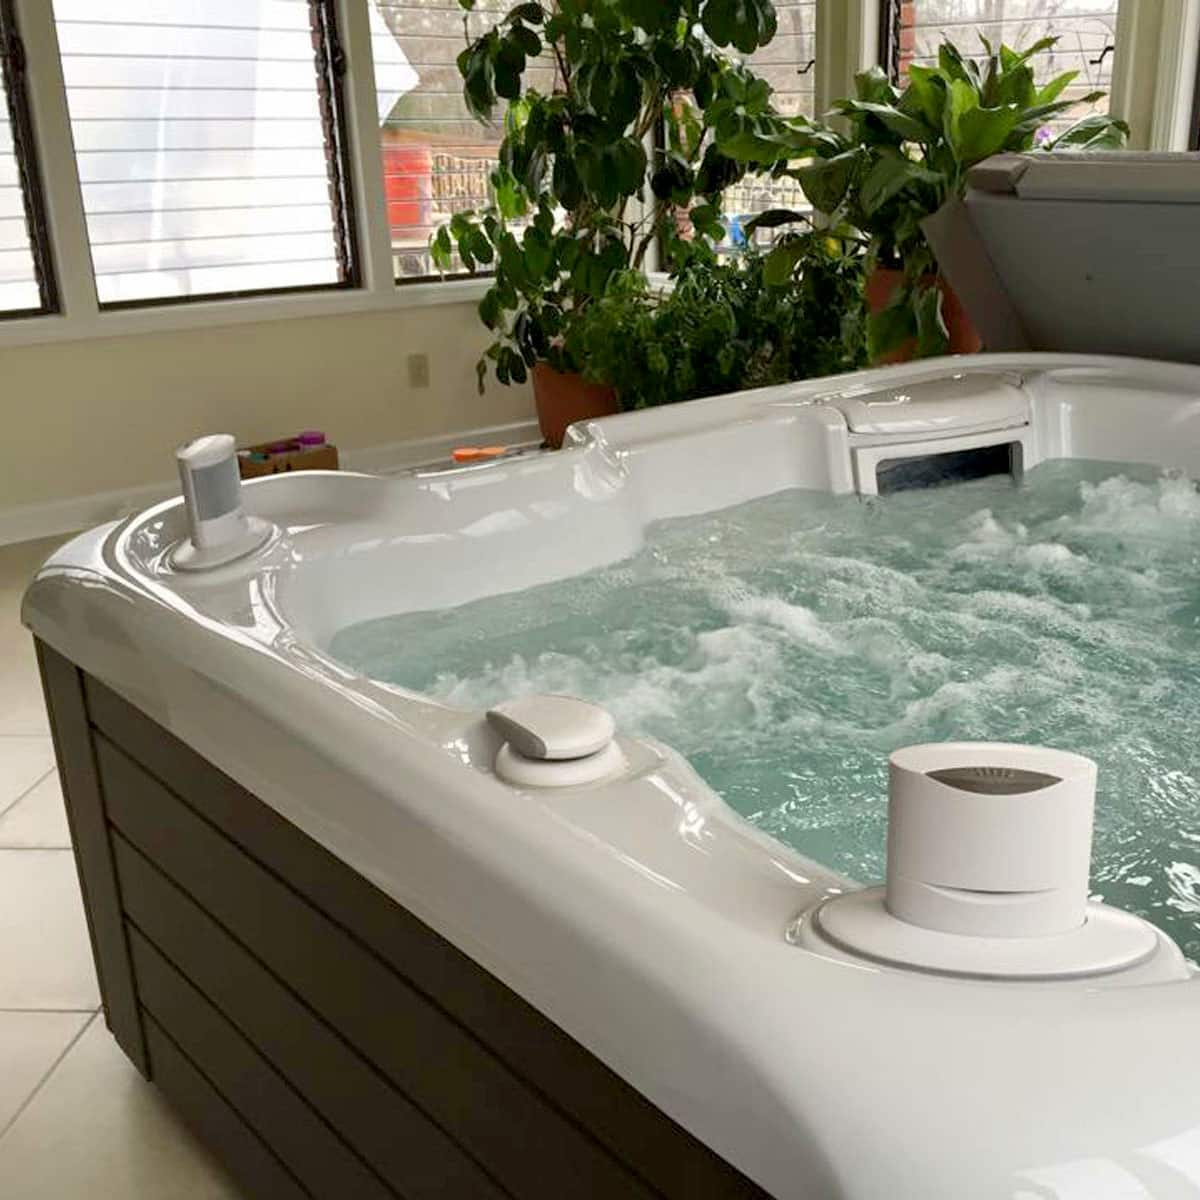 8 Tips For Installing An Indoor Hot Tub Angi Angie S List